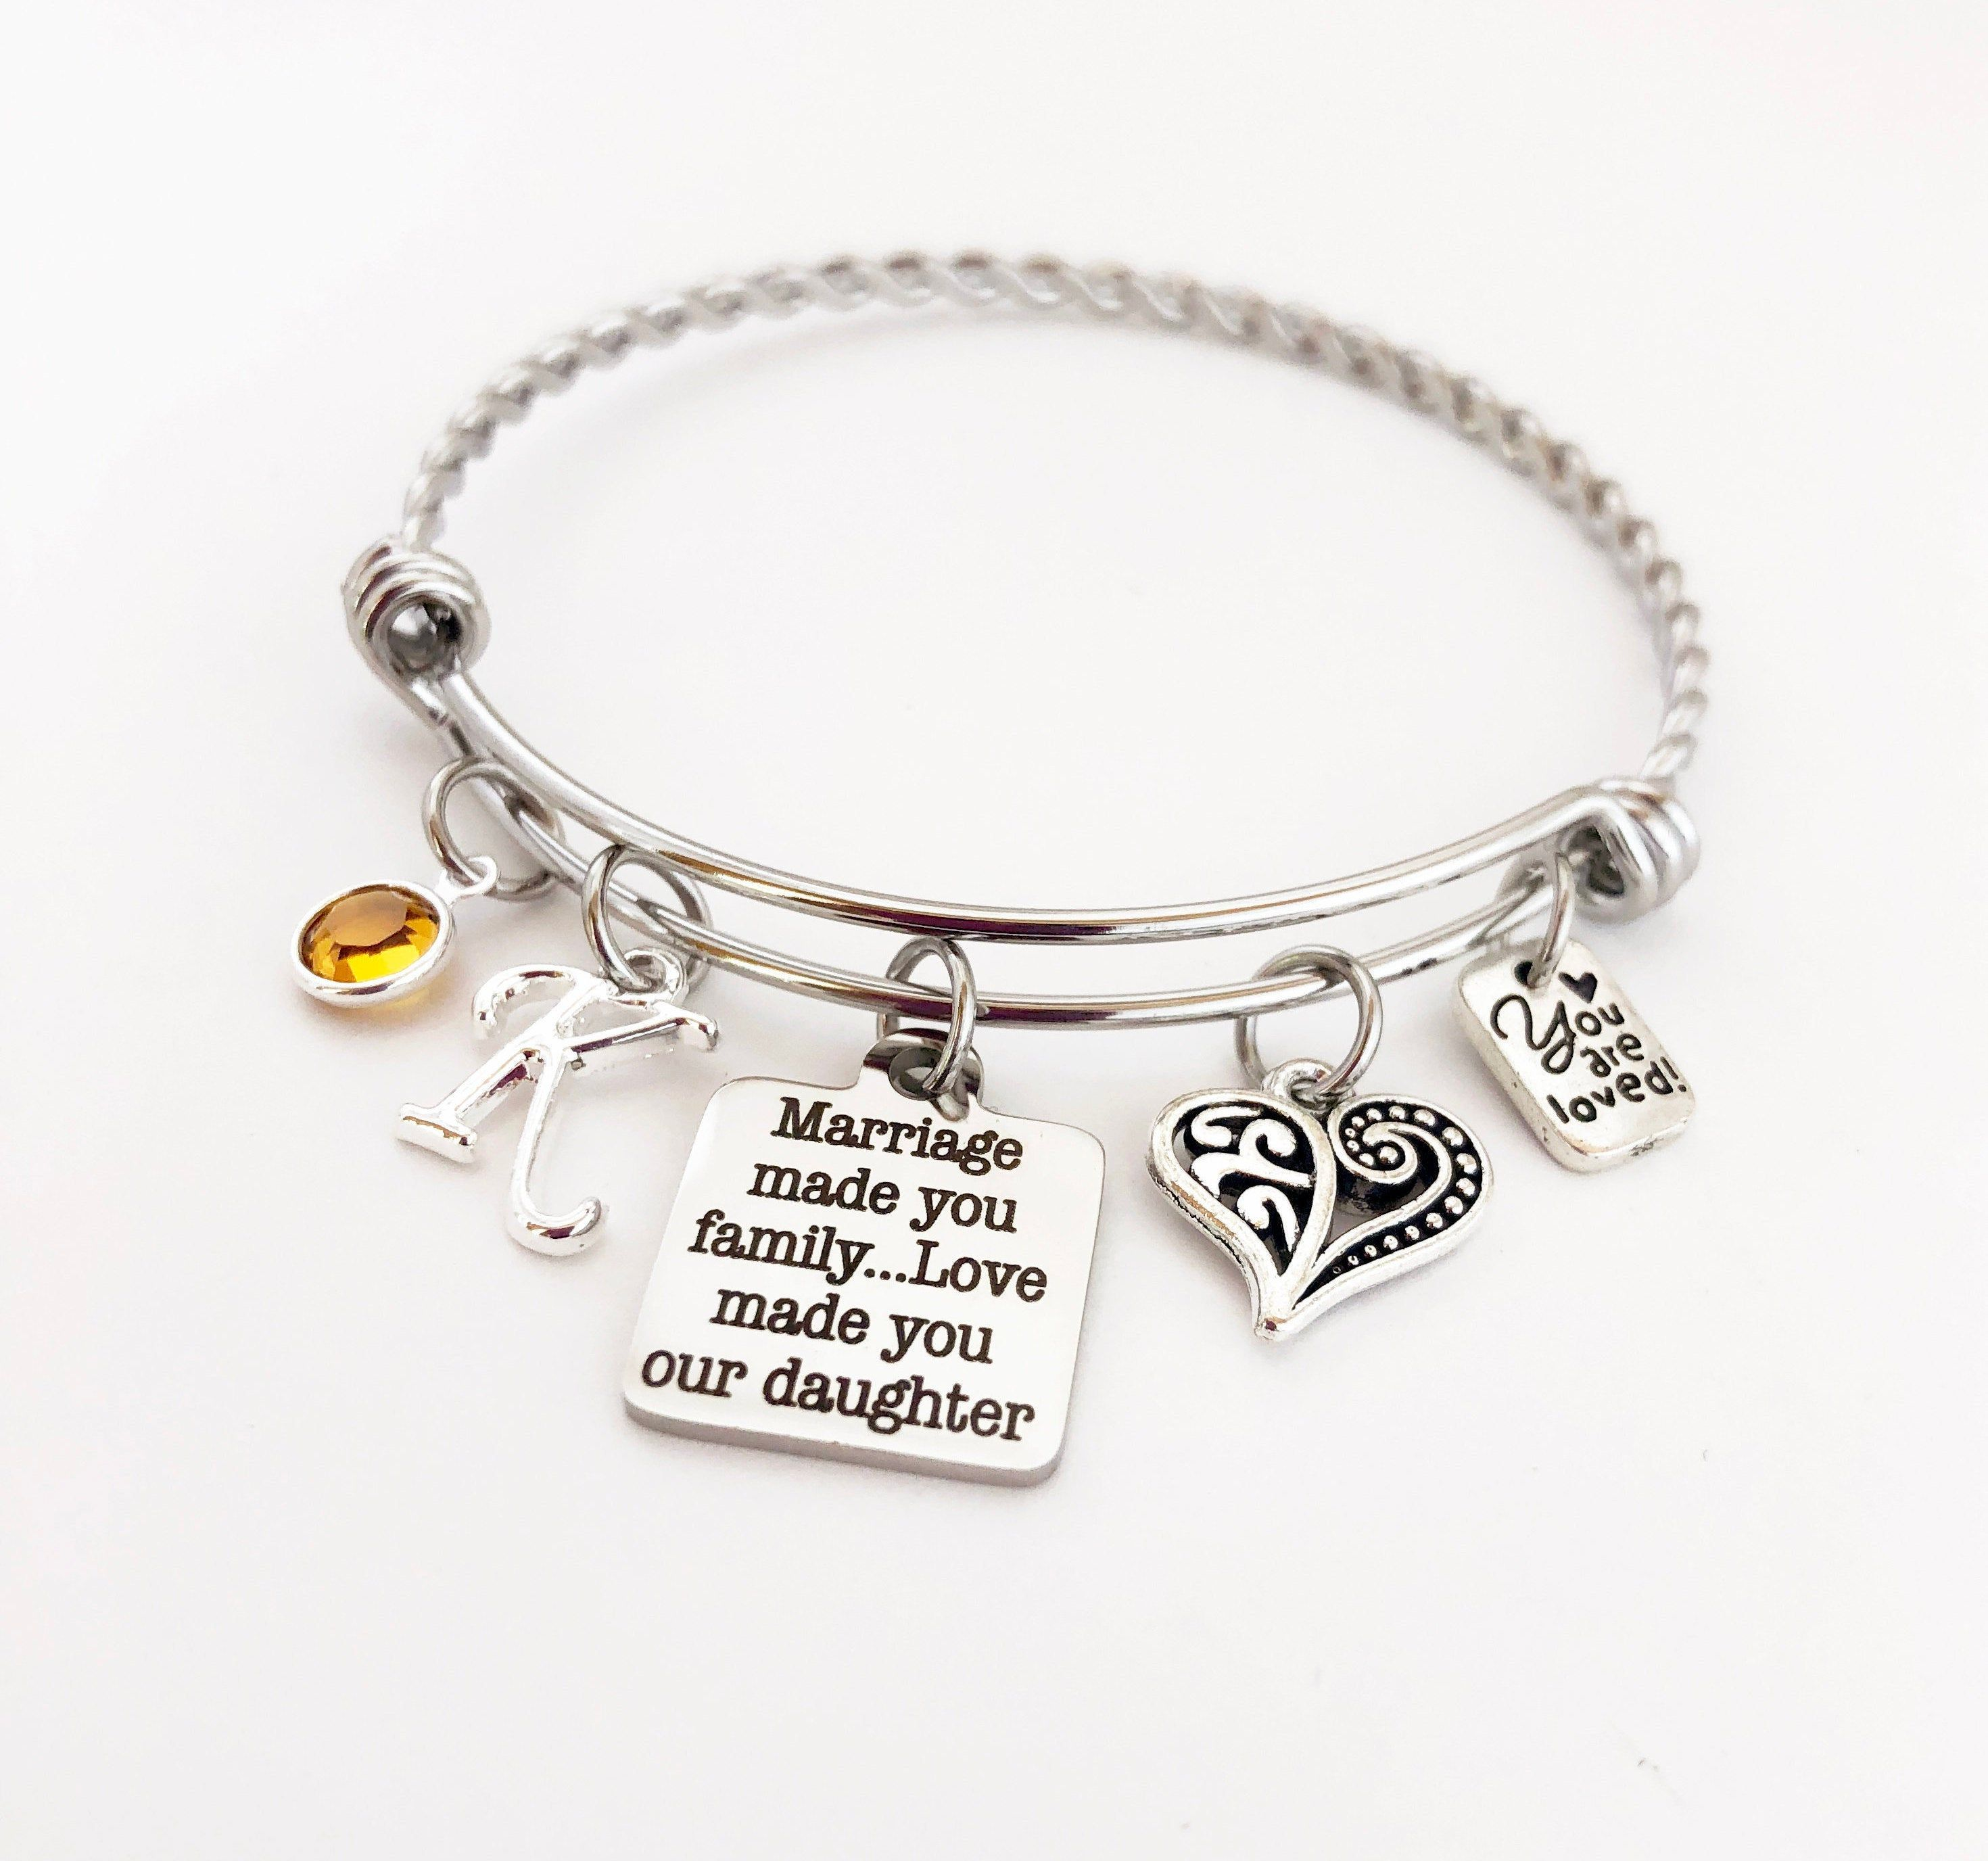 Daughter in law gift for birthday mothers day gifts for